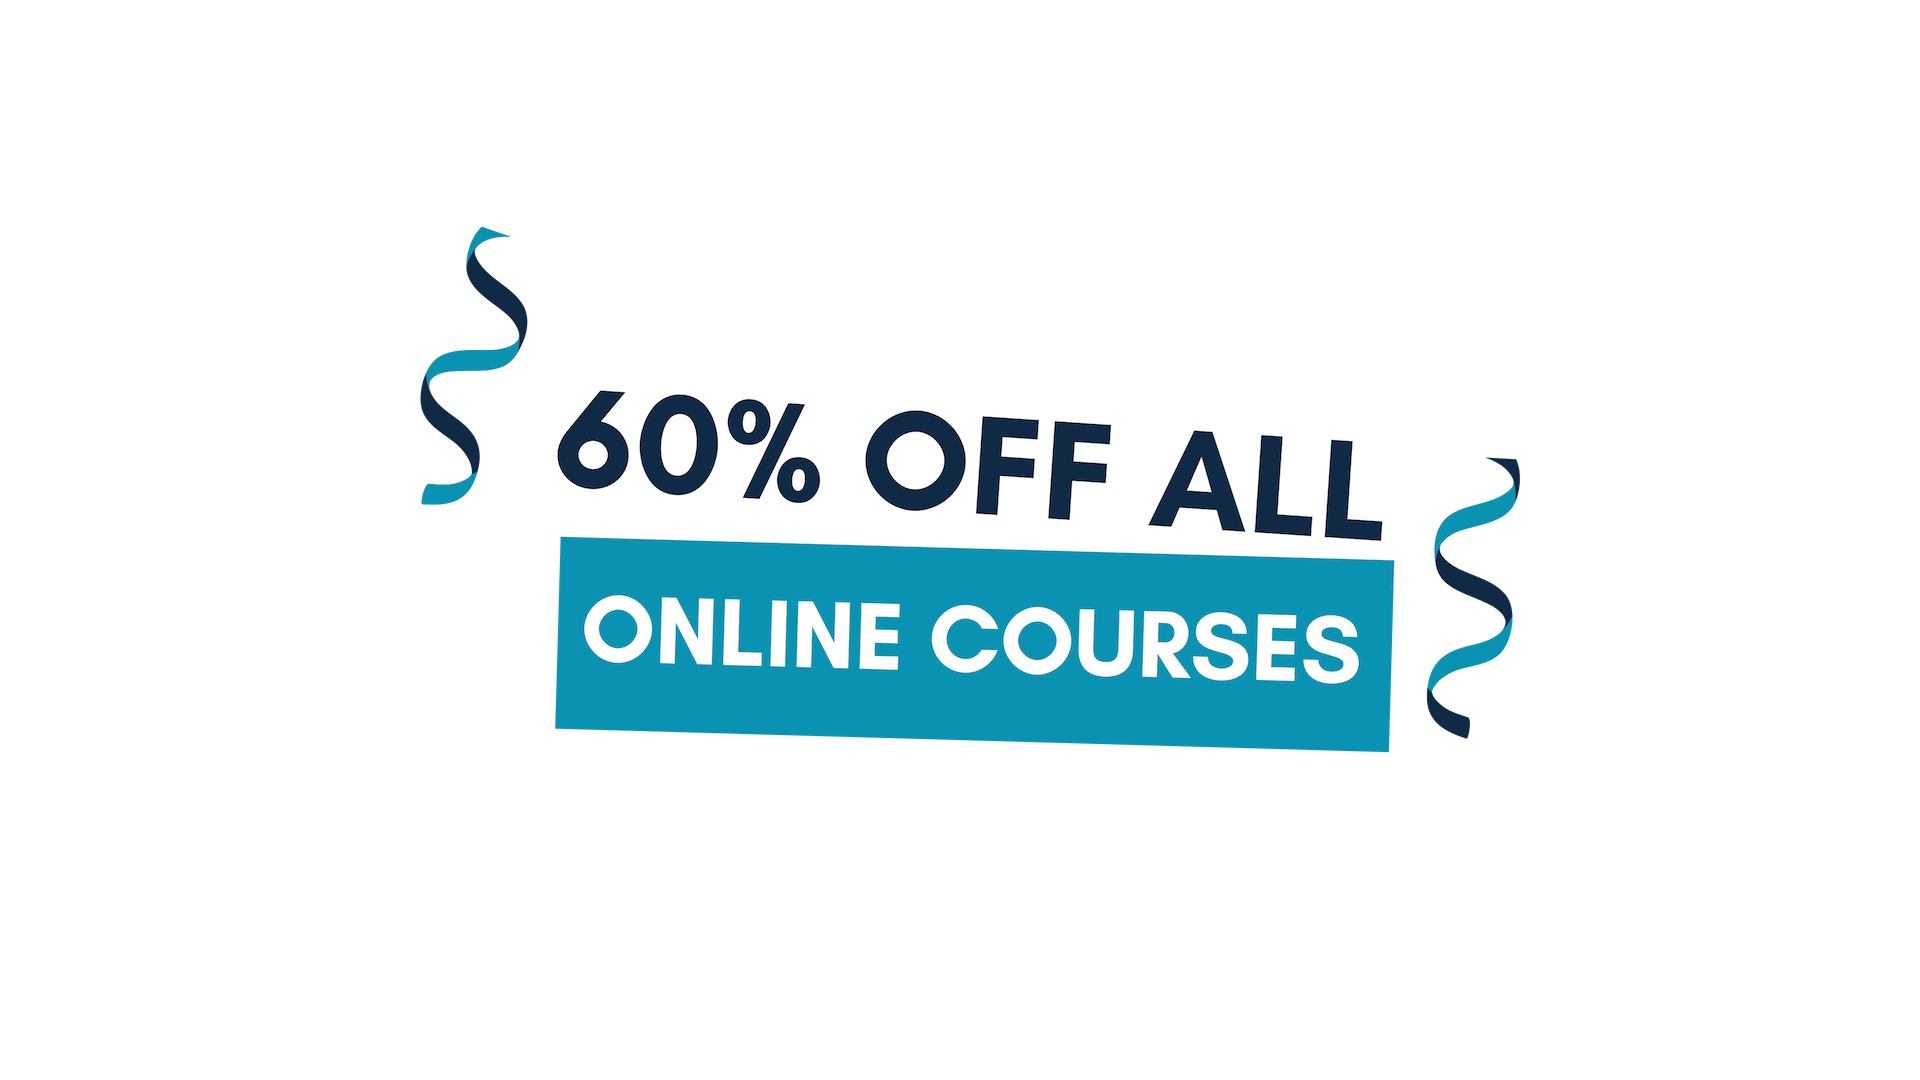 60% Off Online Courses